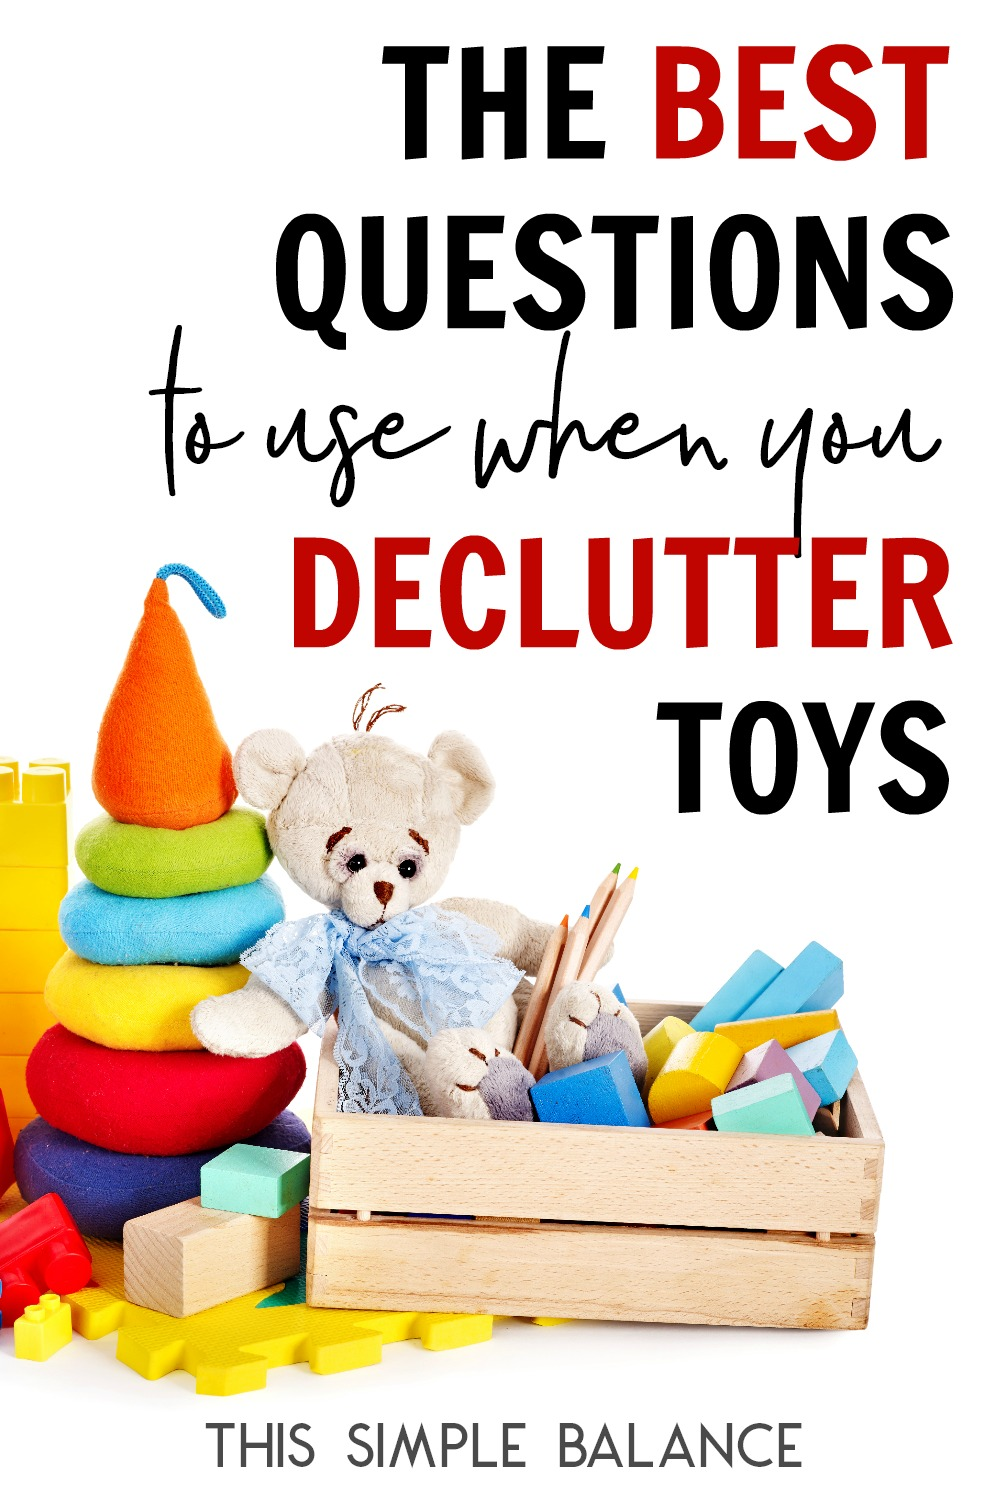 Decluttering toys can get complicated fast. Use these 8 questions to make eliminating toy clutter easier!